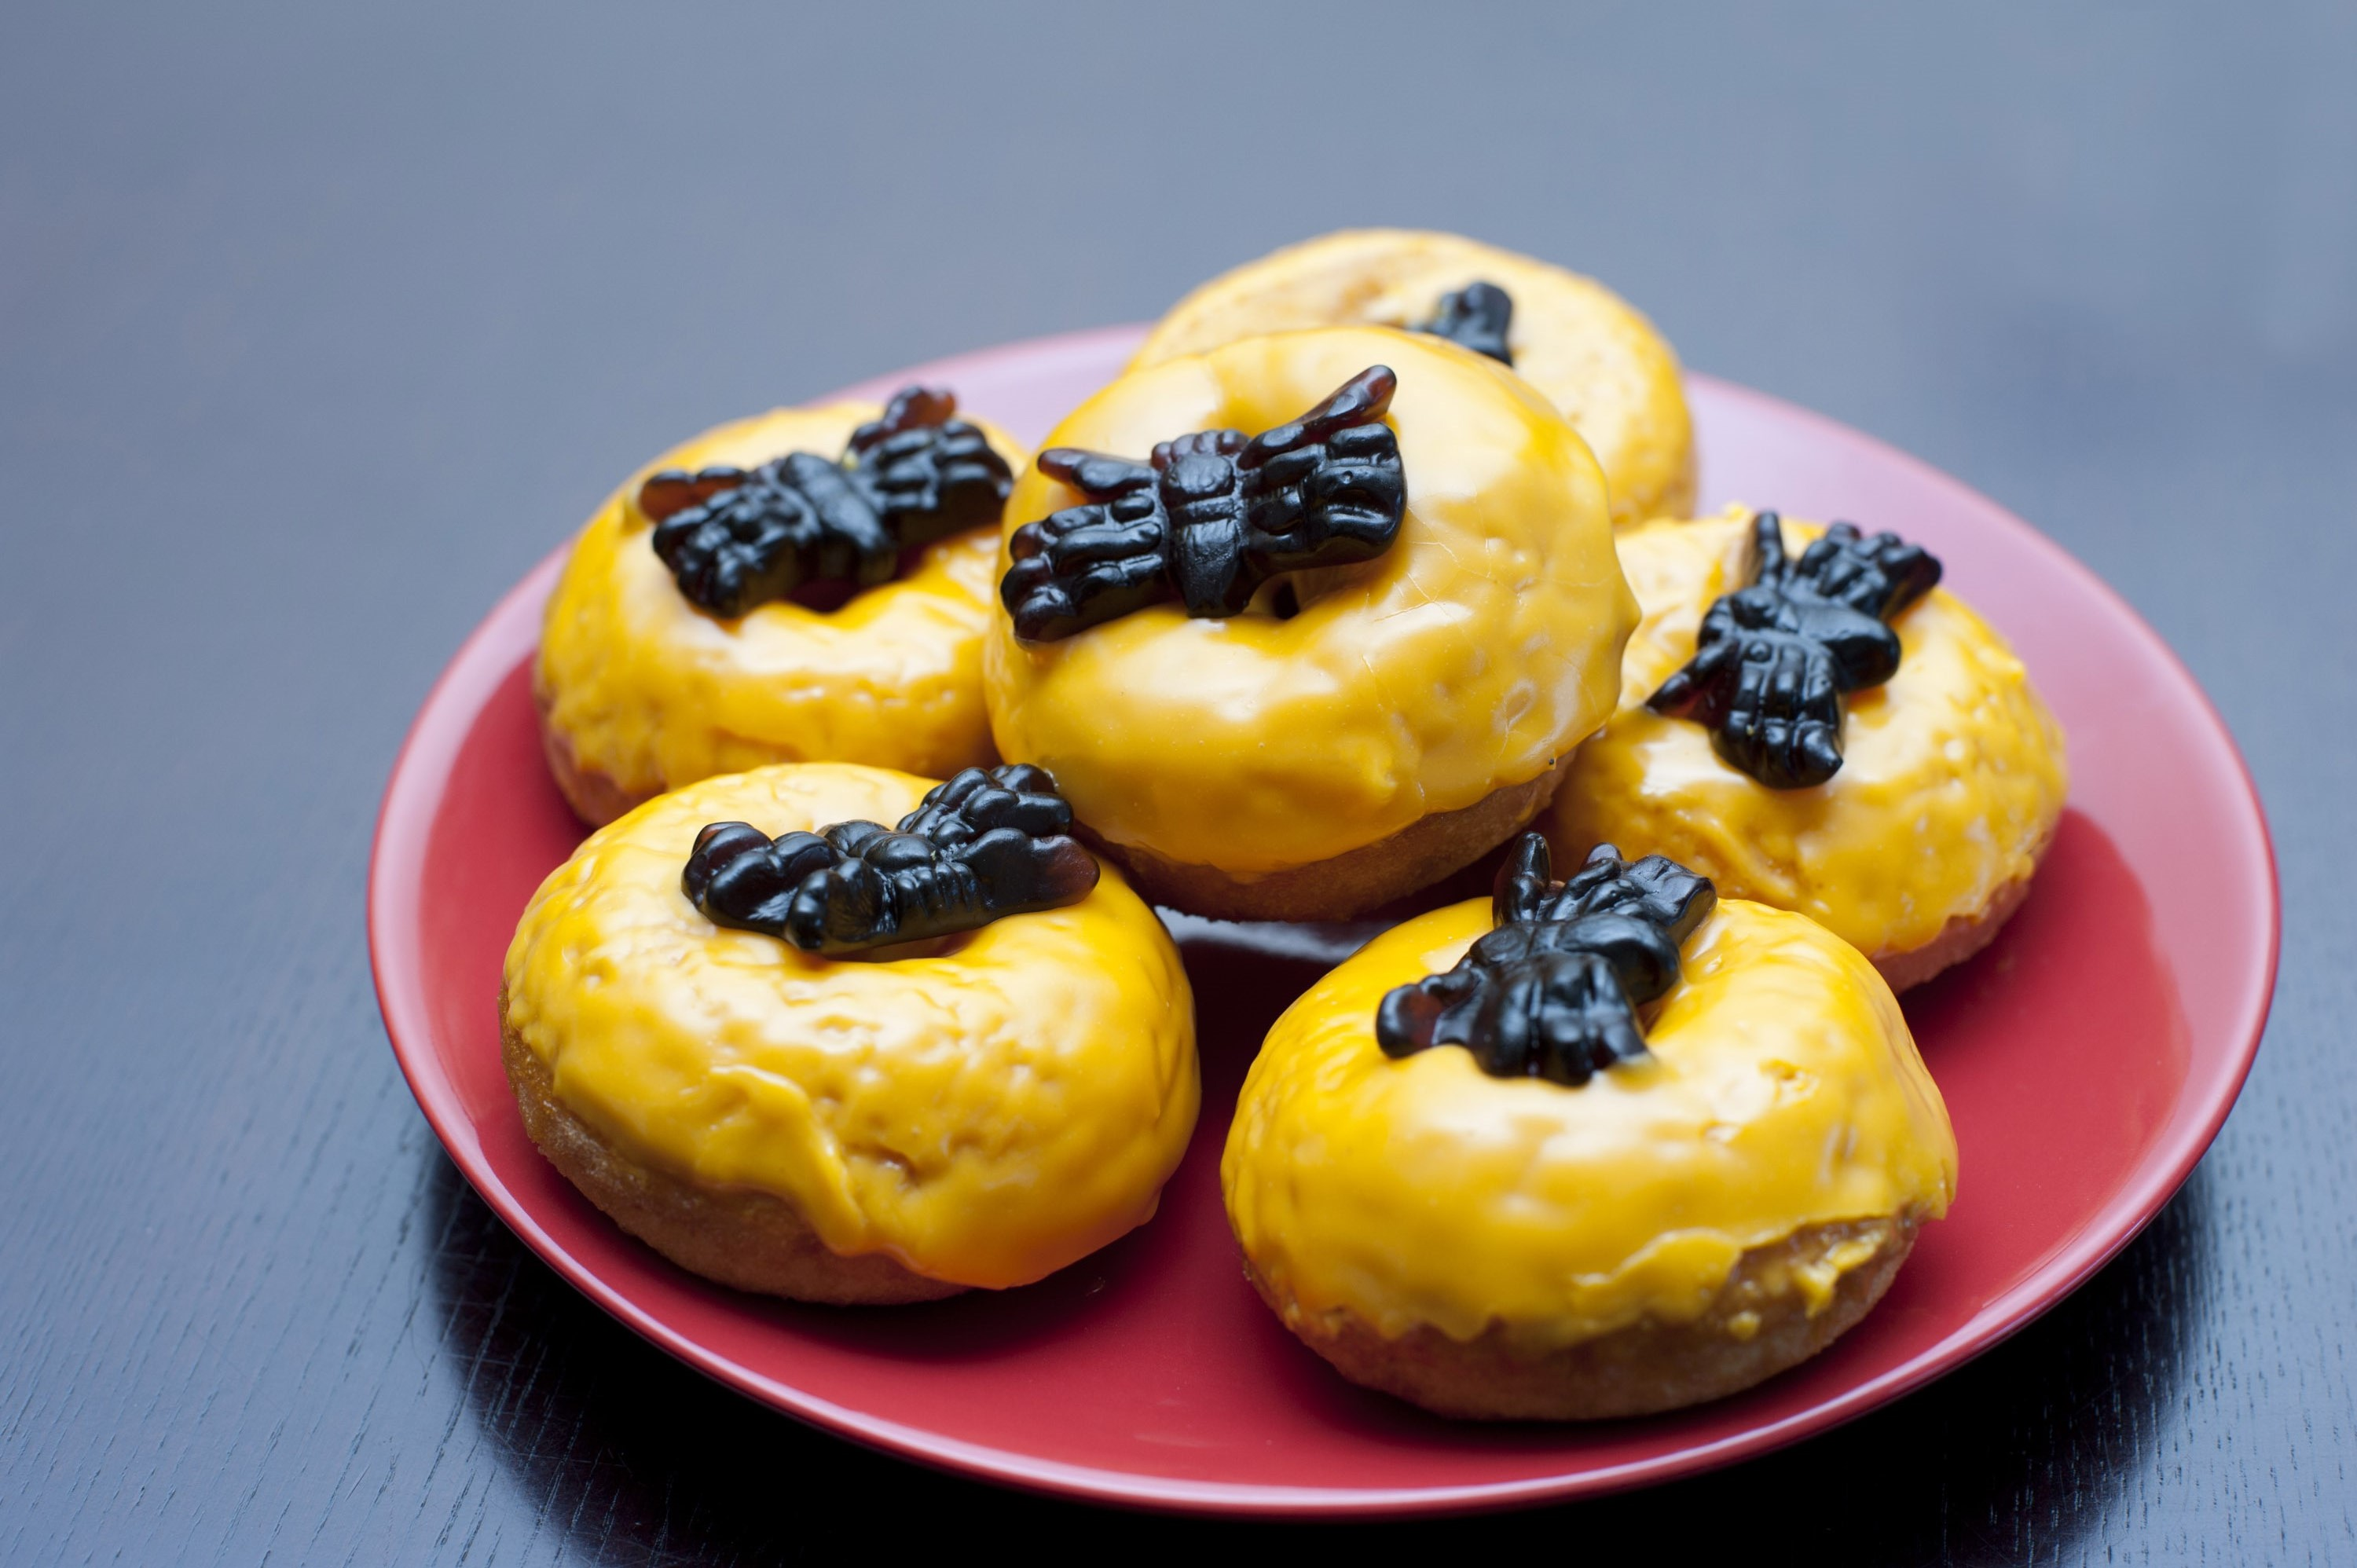 Plate of Halloween doughnuts with colourful orange icing and black jelly spiders for a creepy trick and treat